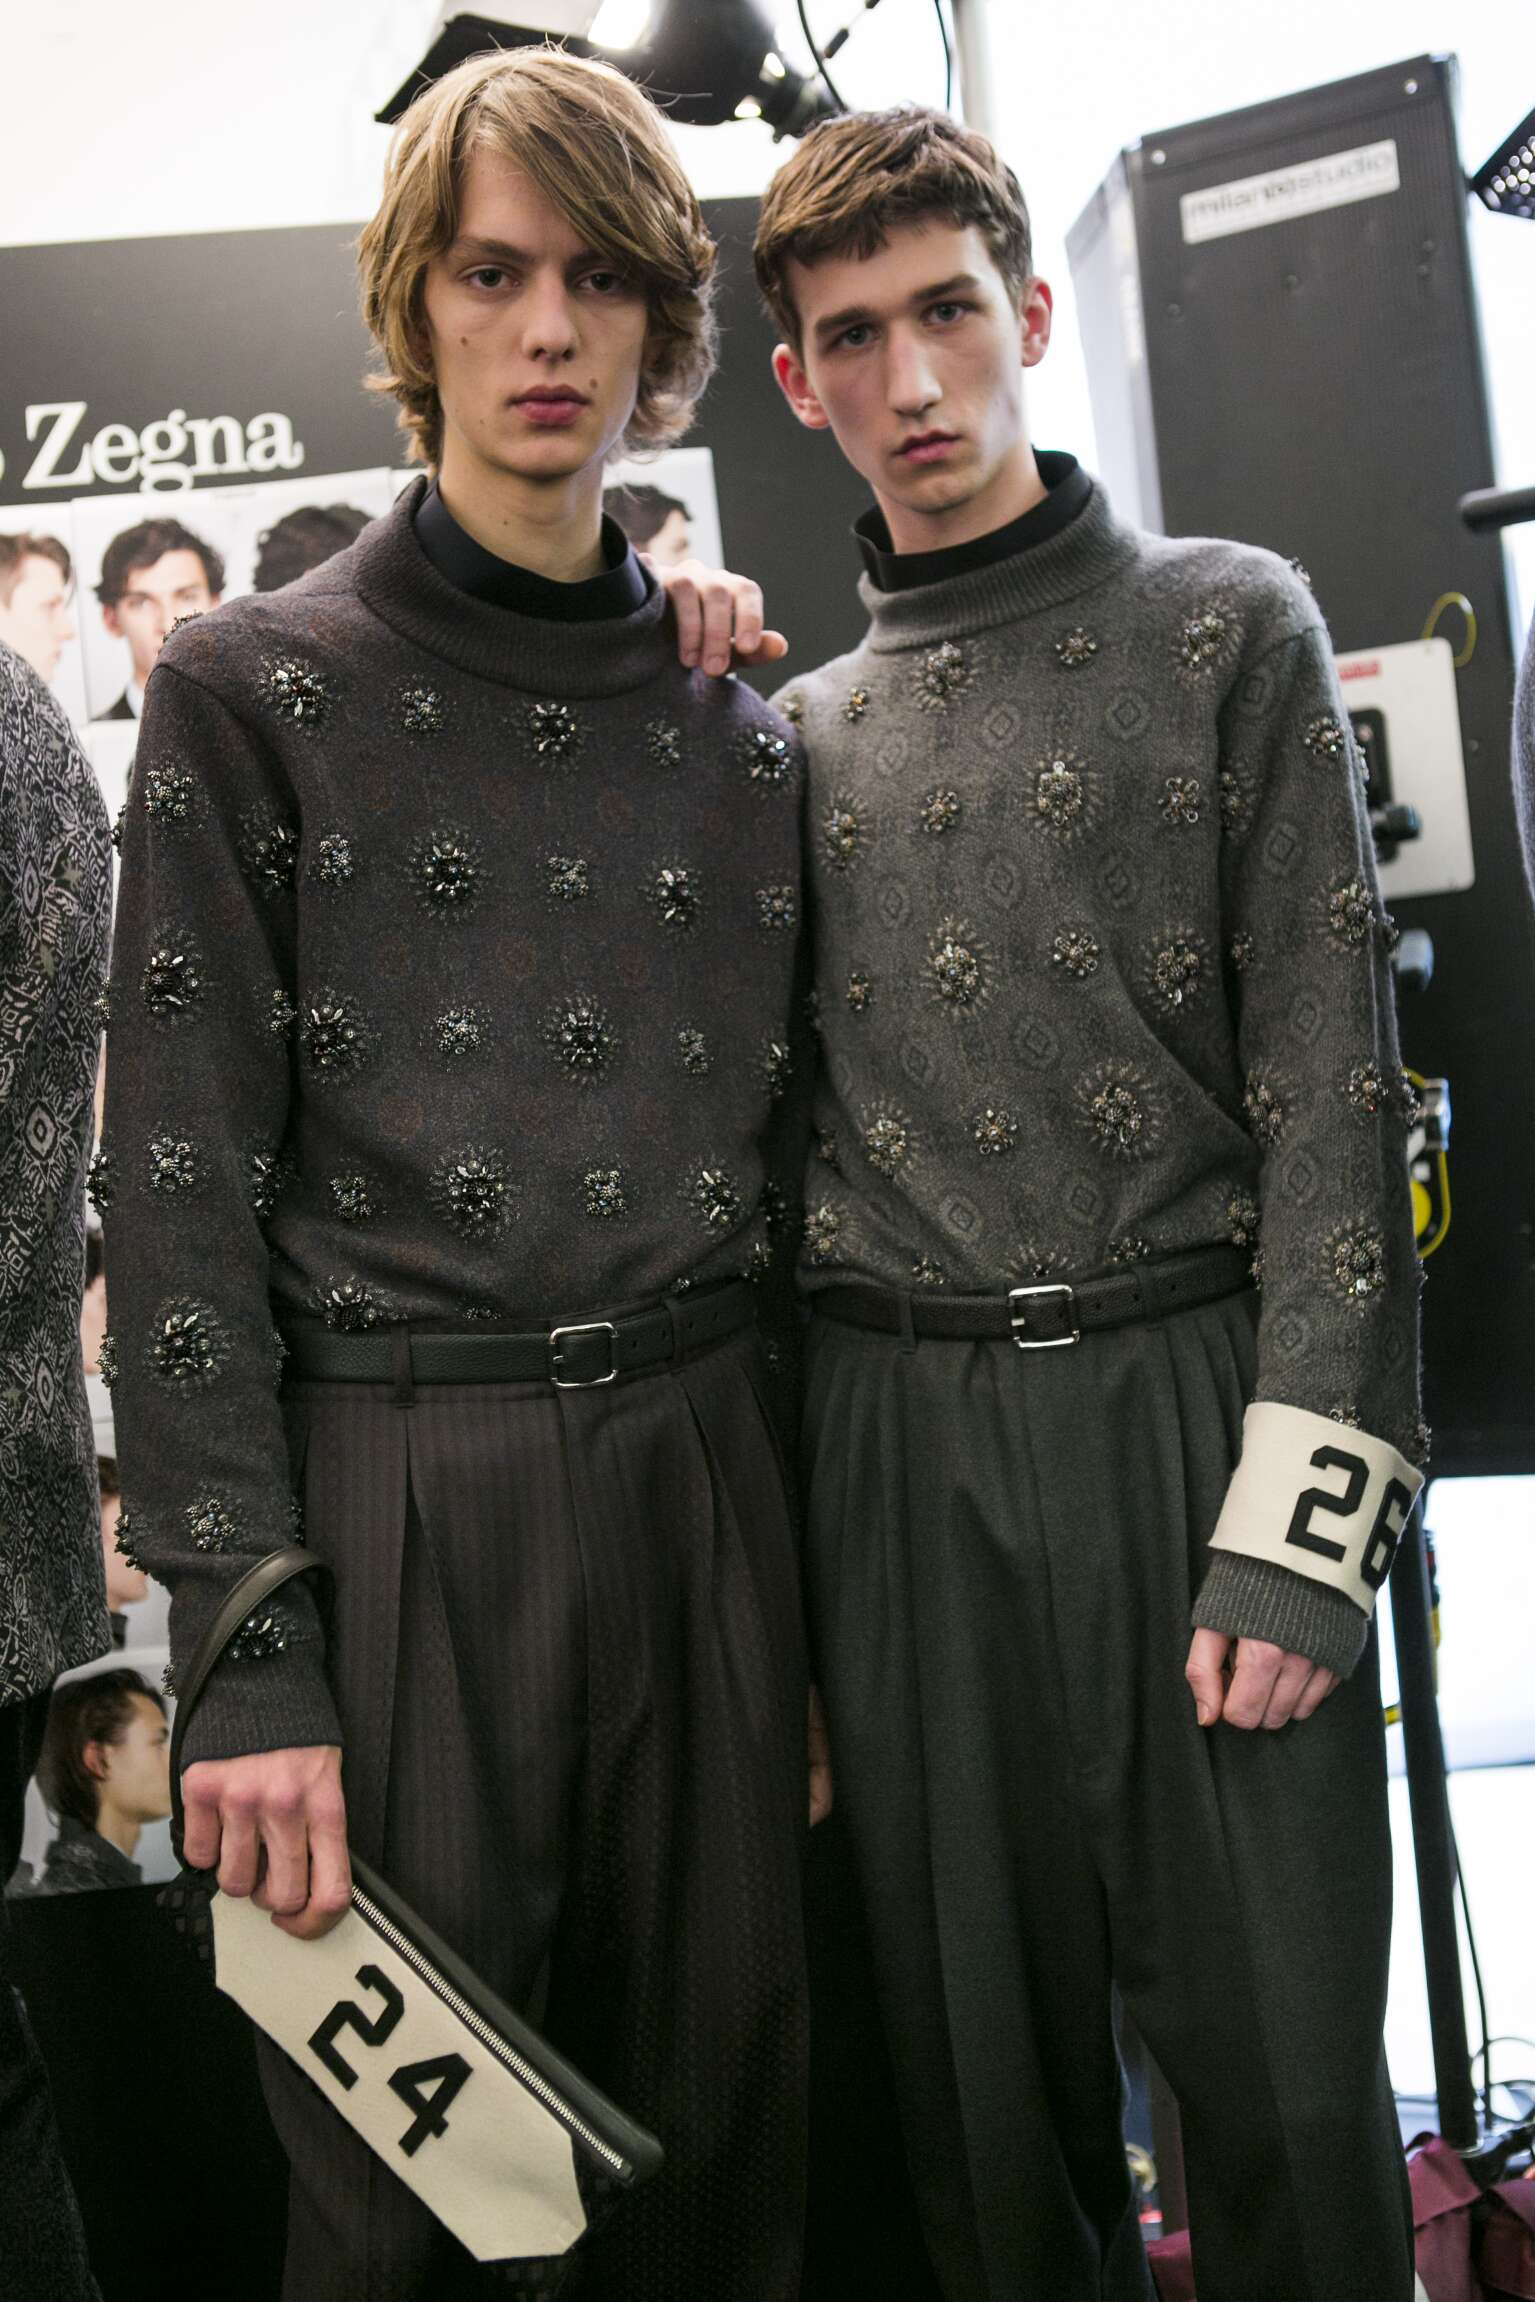 Zegna Couture Backstage